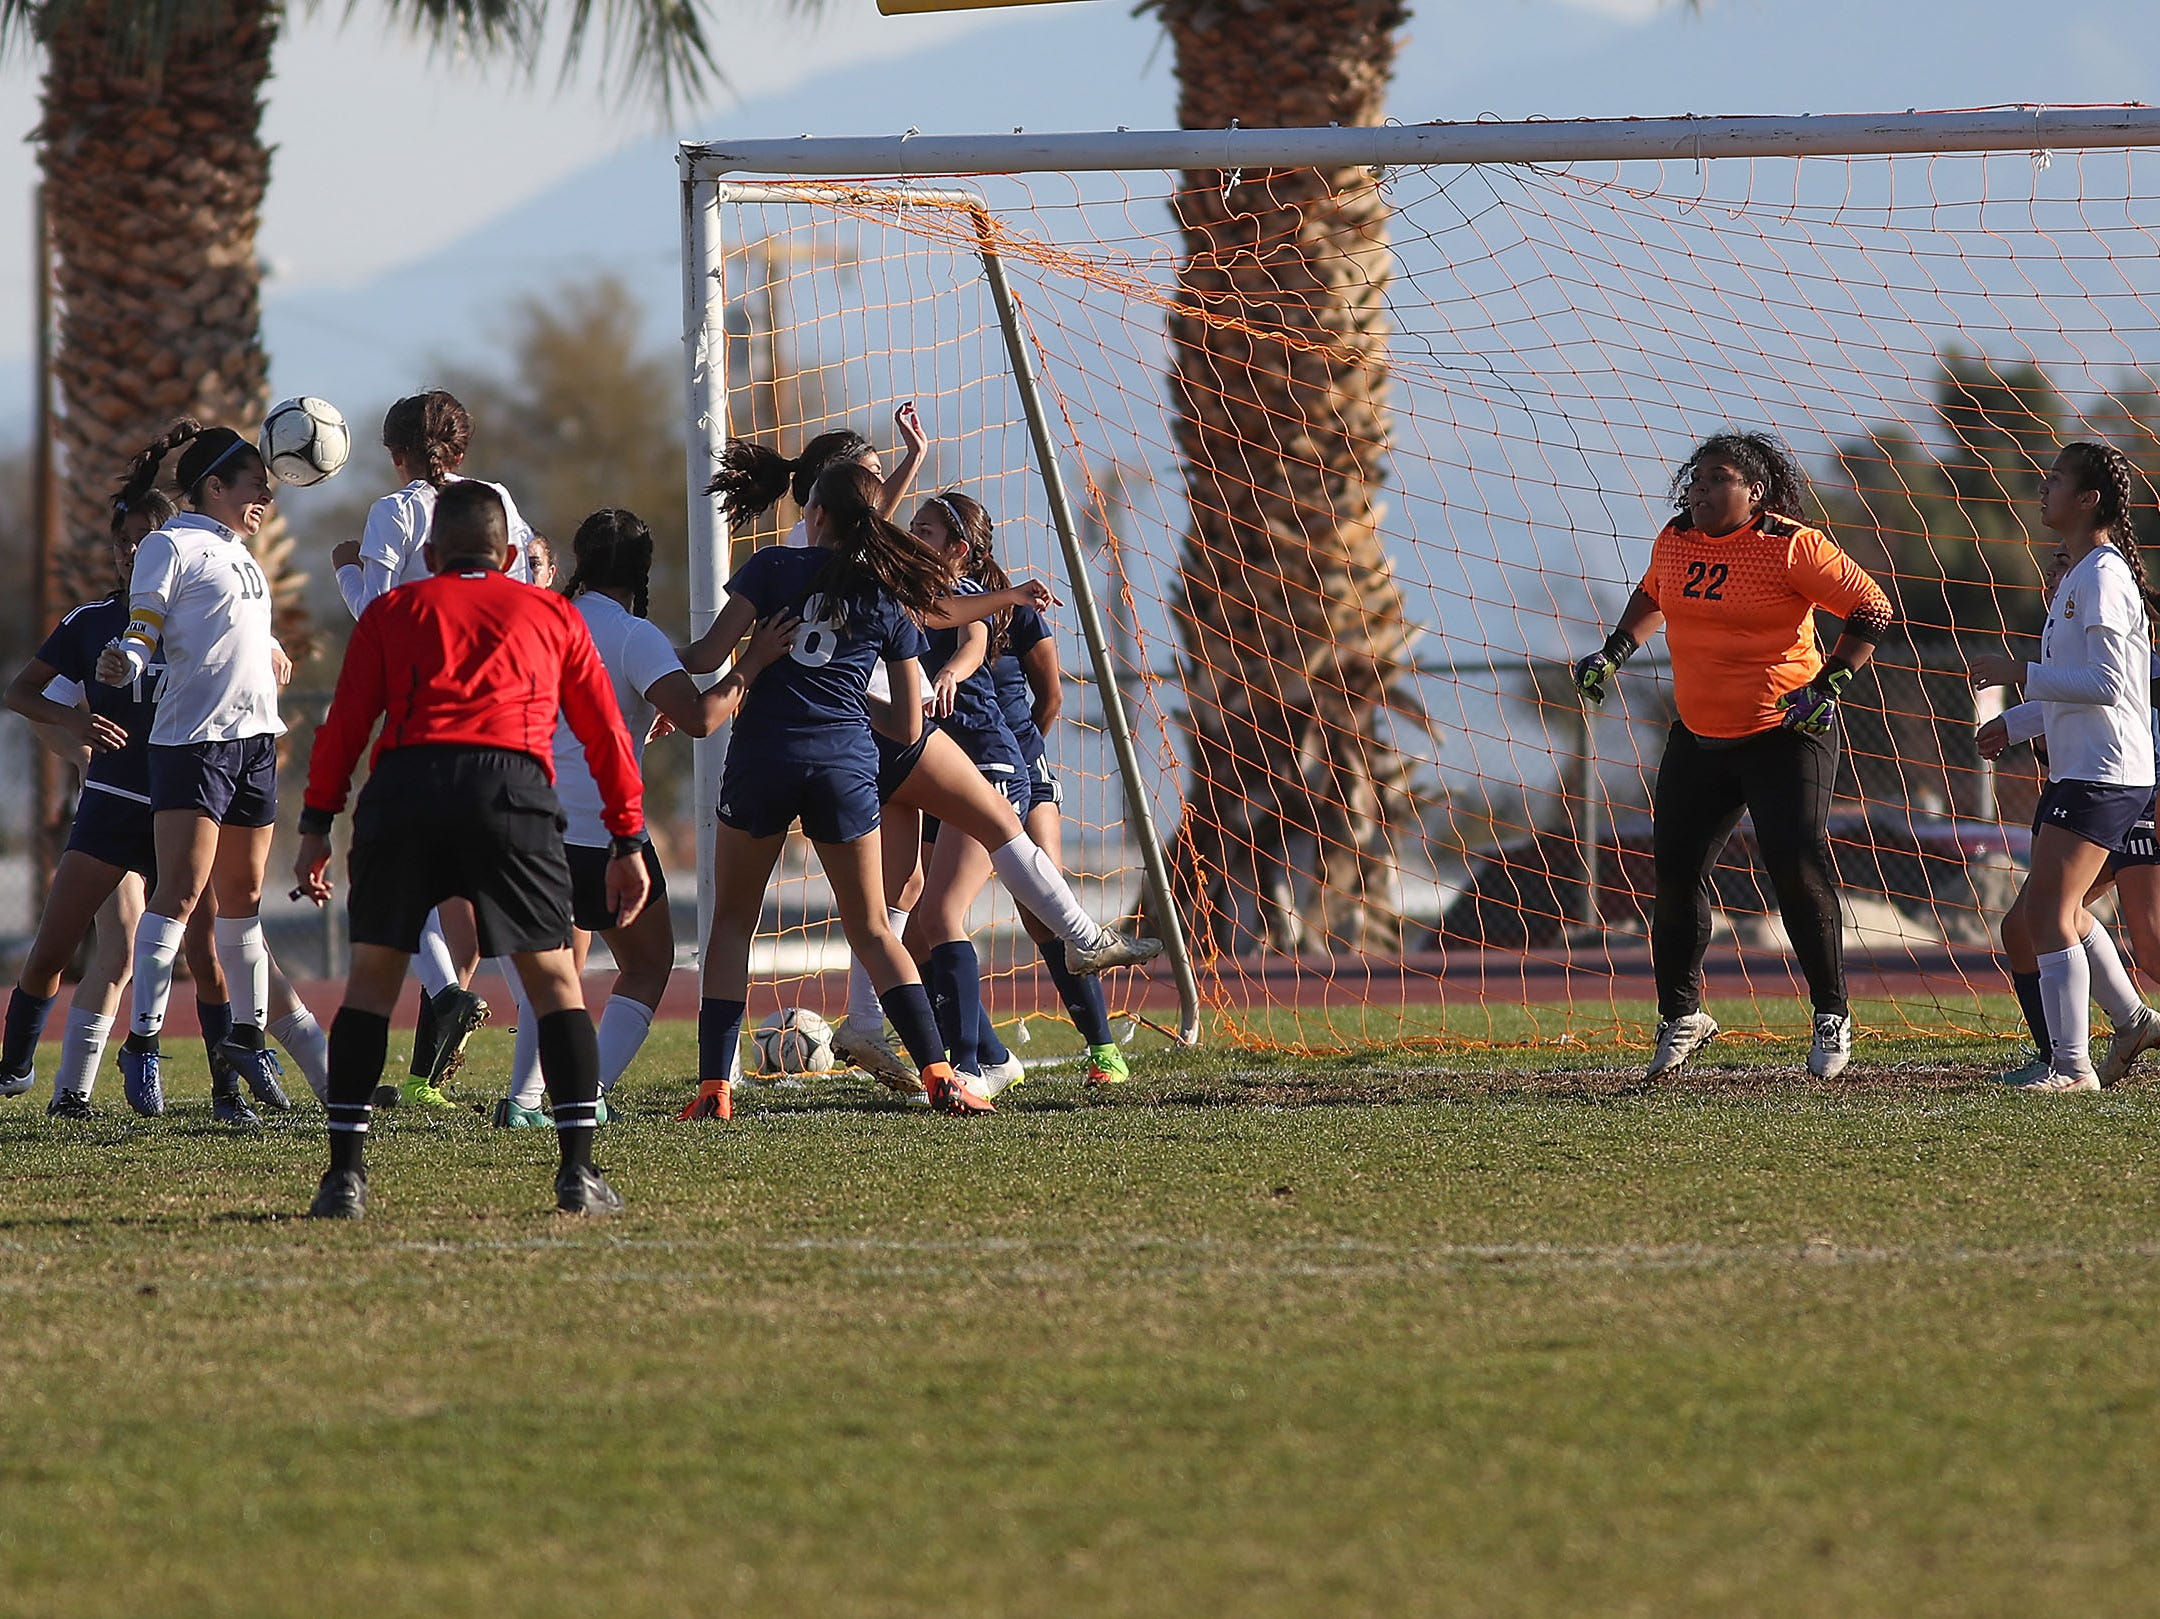 Santa Clara scores on a header from a corner kick againt Desert Hot Springs during their match, February 8, 2019.